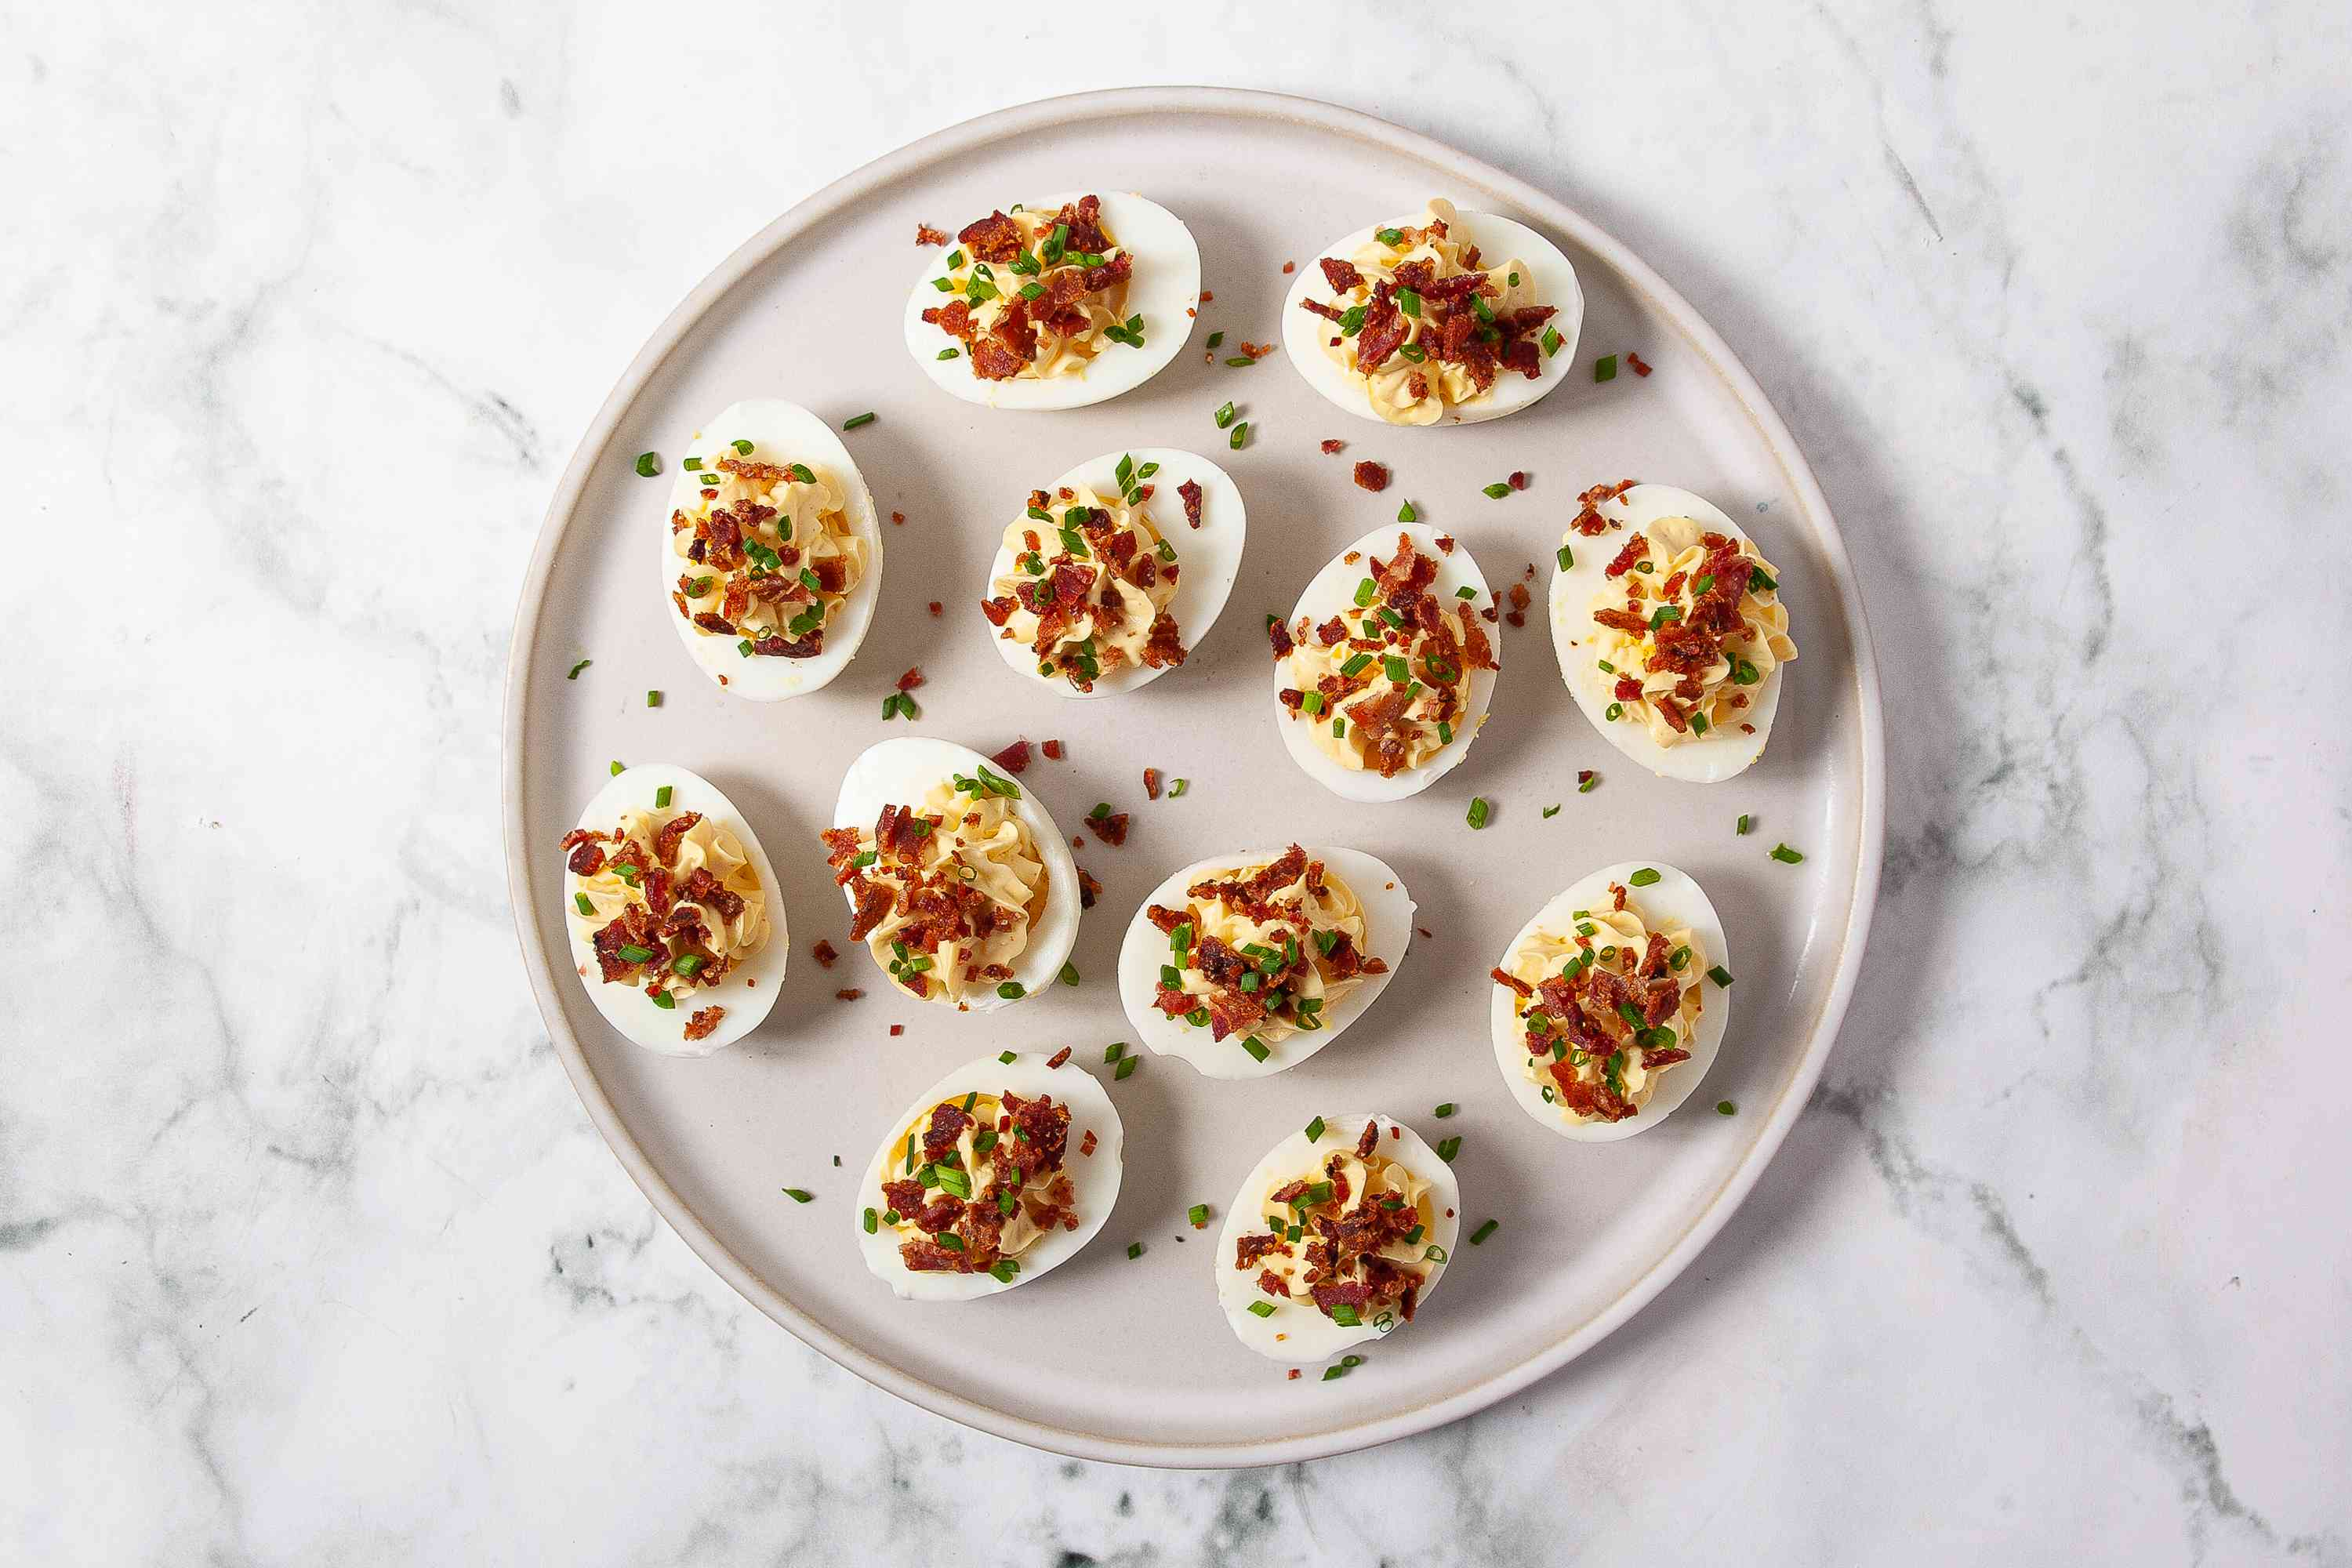 Deviled eggs sprinkled with bacon and chives